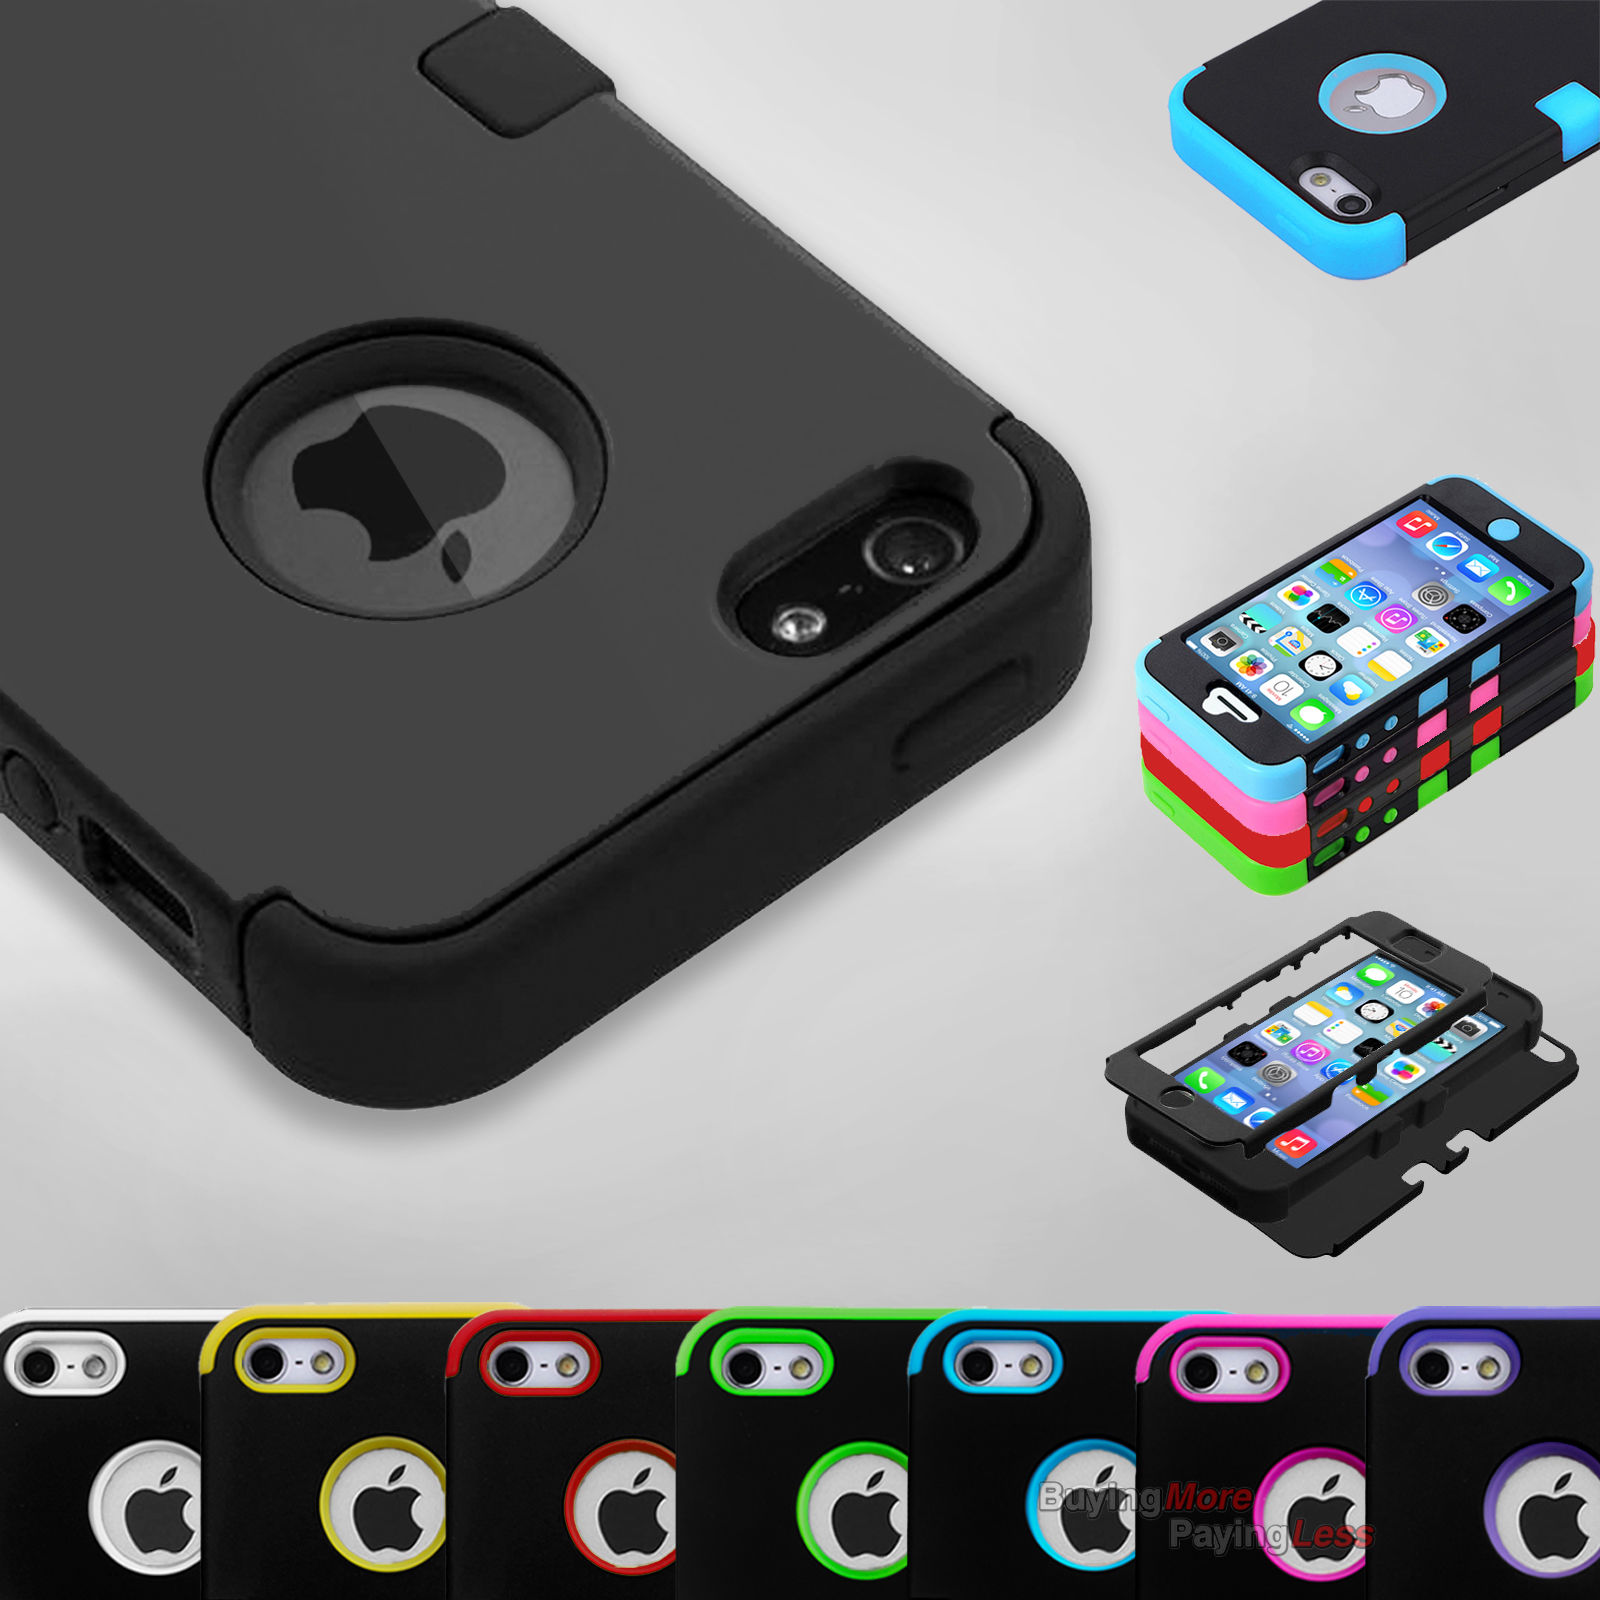 Squishy Case For Iphone 5s : Hybrid Shockproof Hard&Soft Rugged Cover For Apple iPhone SE Case iPhone 5 5s